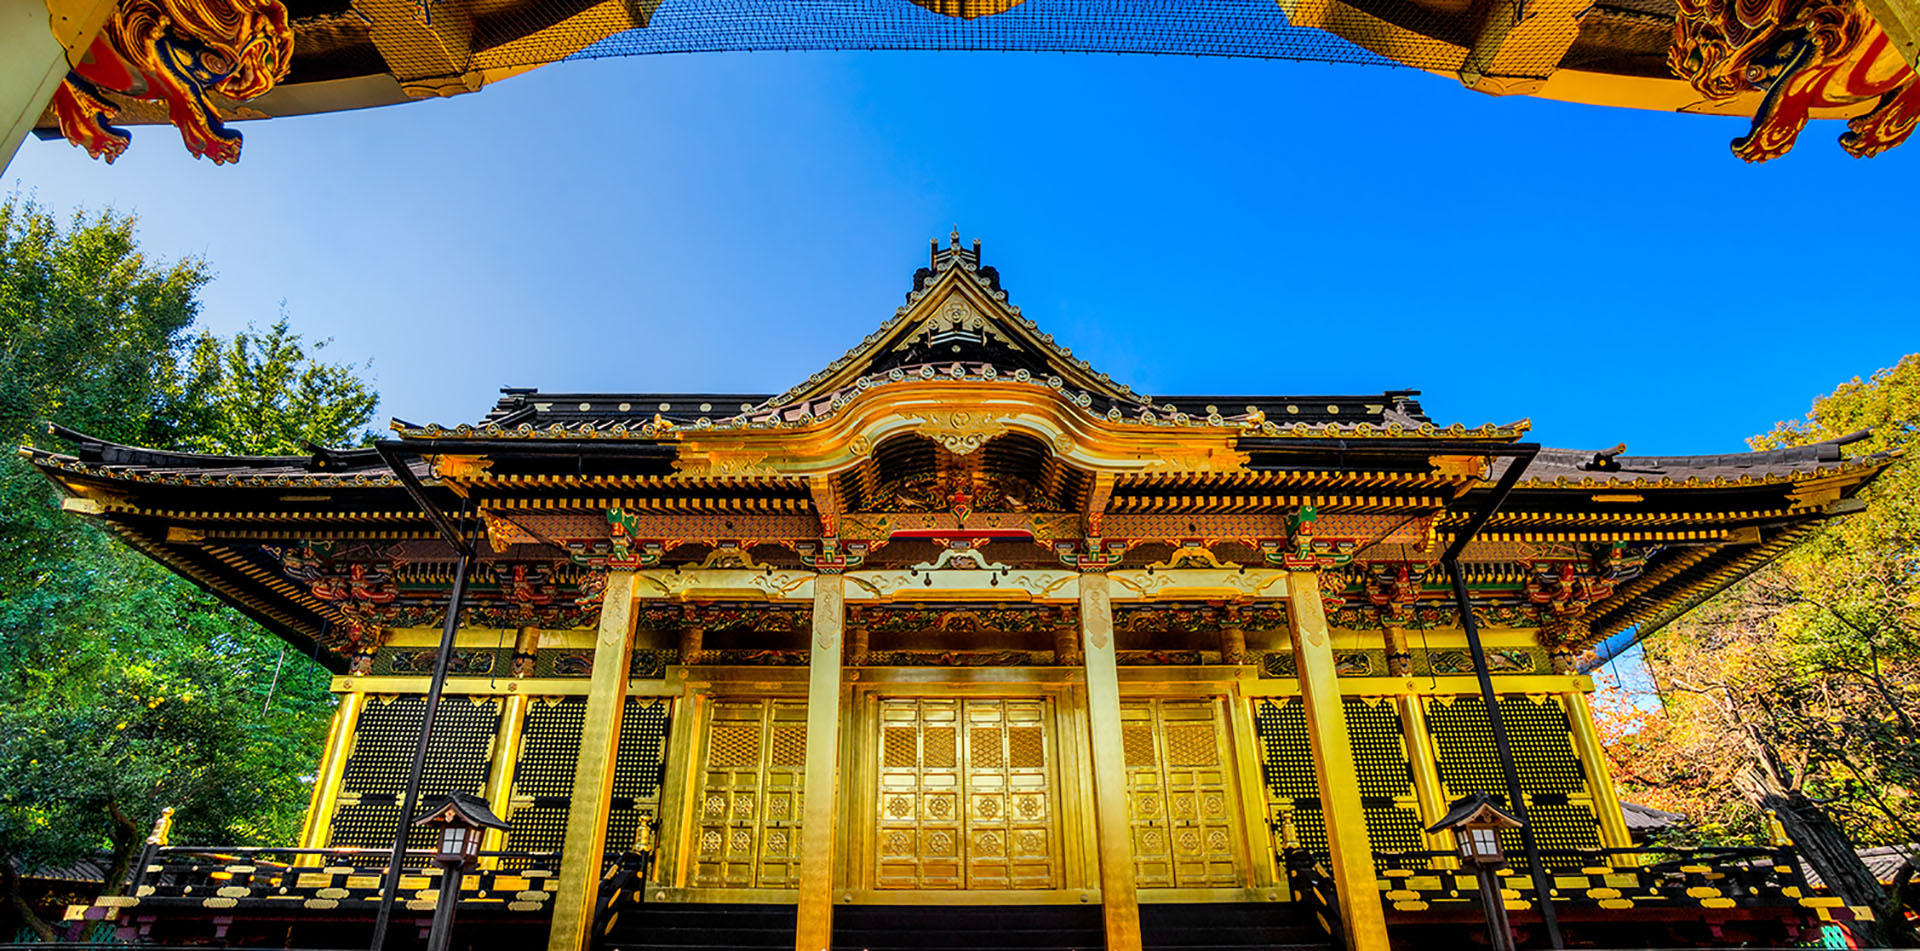 Asia Japan Tokyo Ueno Toshogu Shrine golden building in traditional architecture - luxury vacation destinations